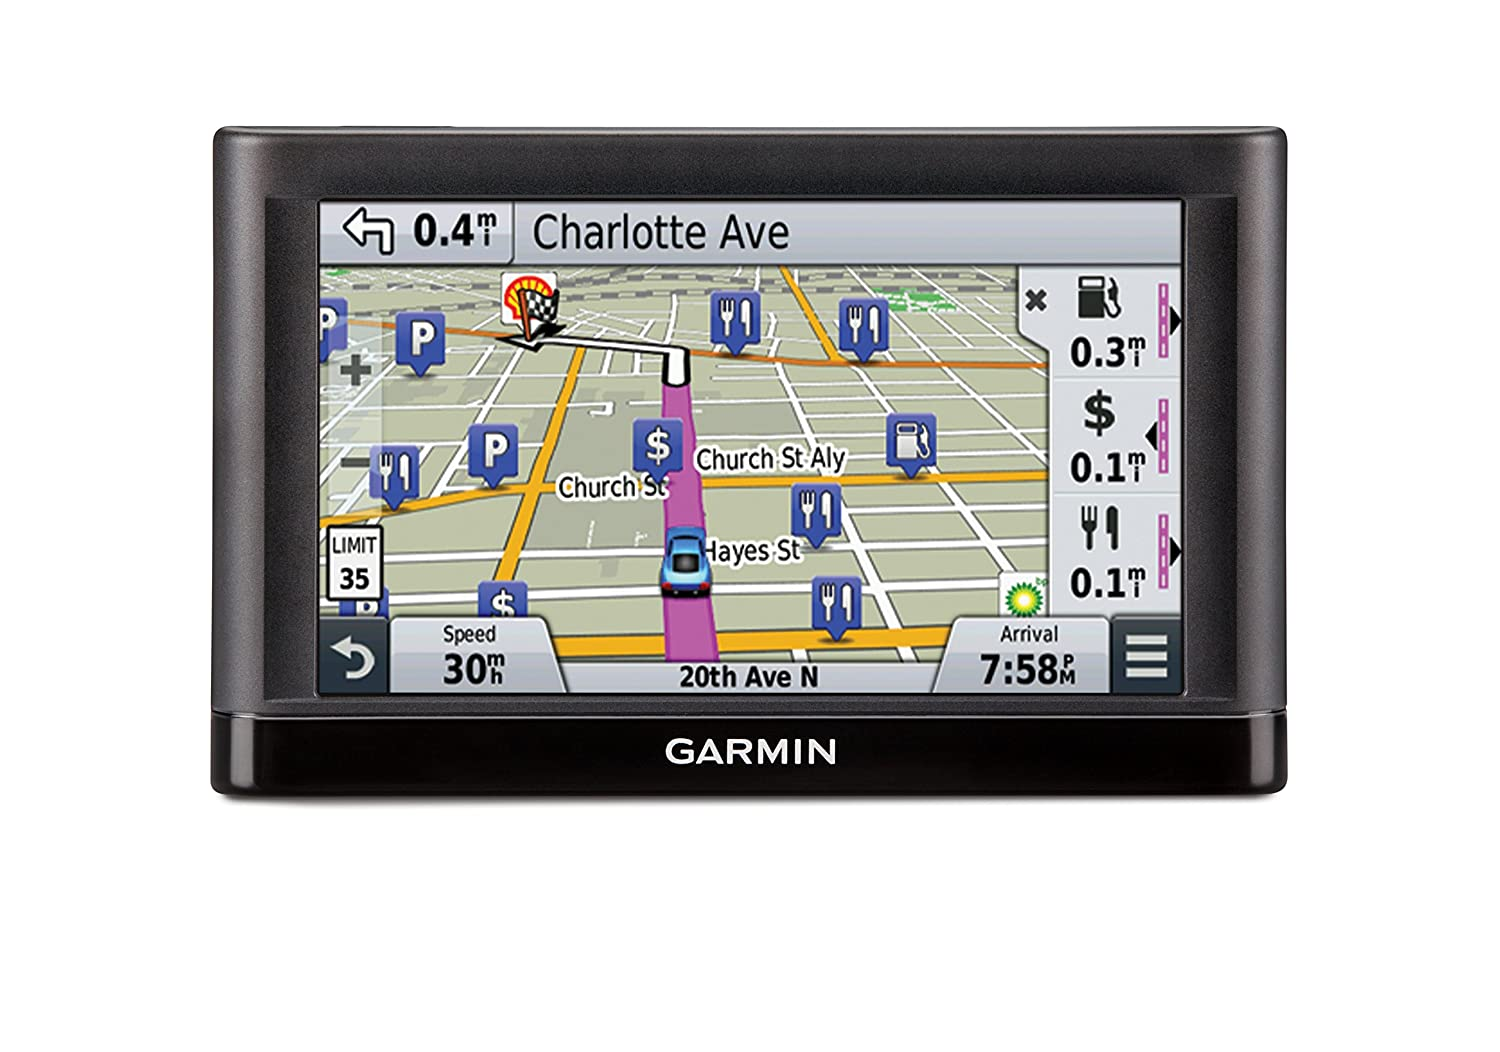 Garmin Navigators Directions Preloaded Displays Image 2